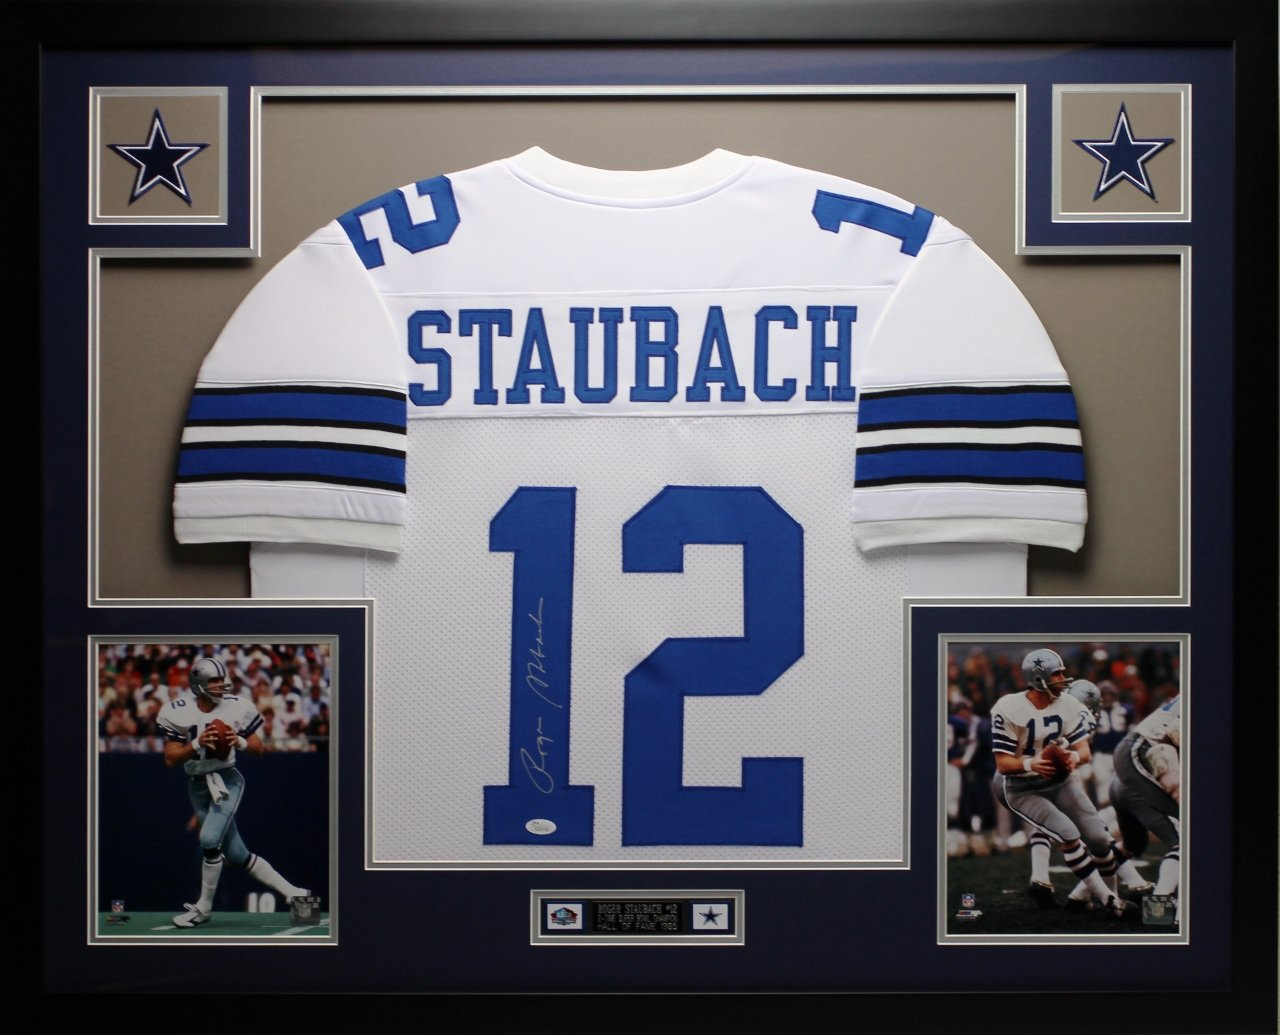 74be2f27107 Get Quotations · Roger Staubach Autographed White Cowboys Jersey -  Beautifully Matted and Framed - Hand Signed By Roger